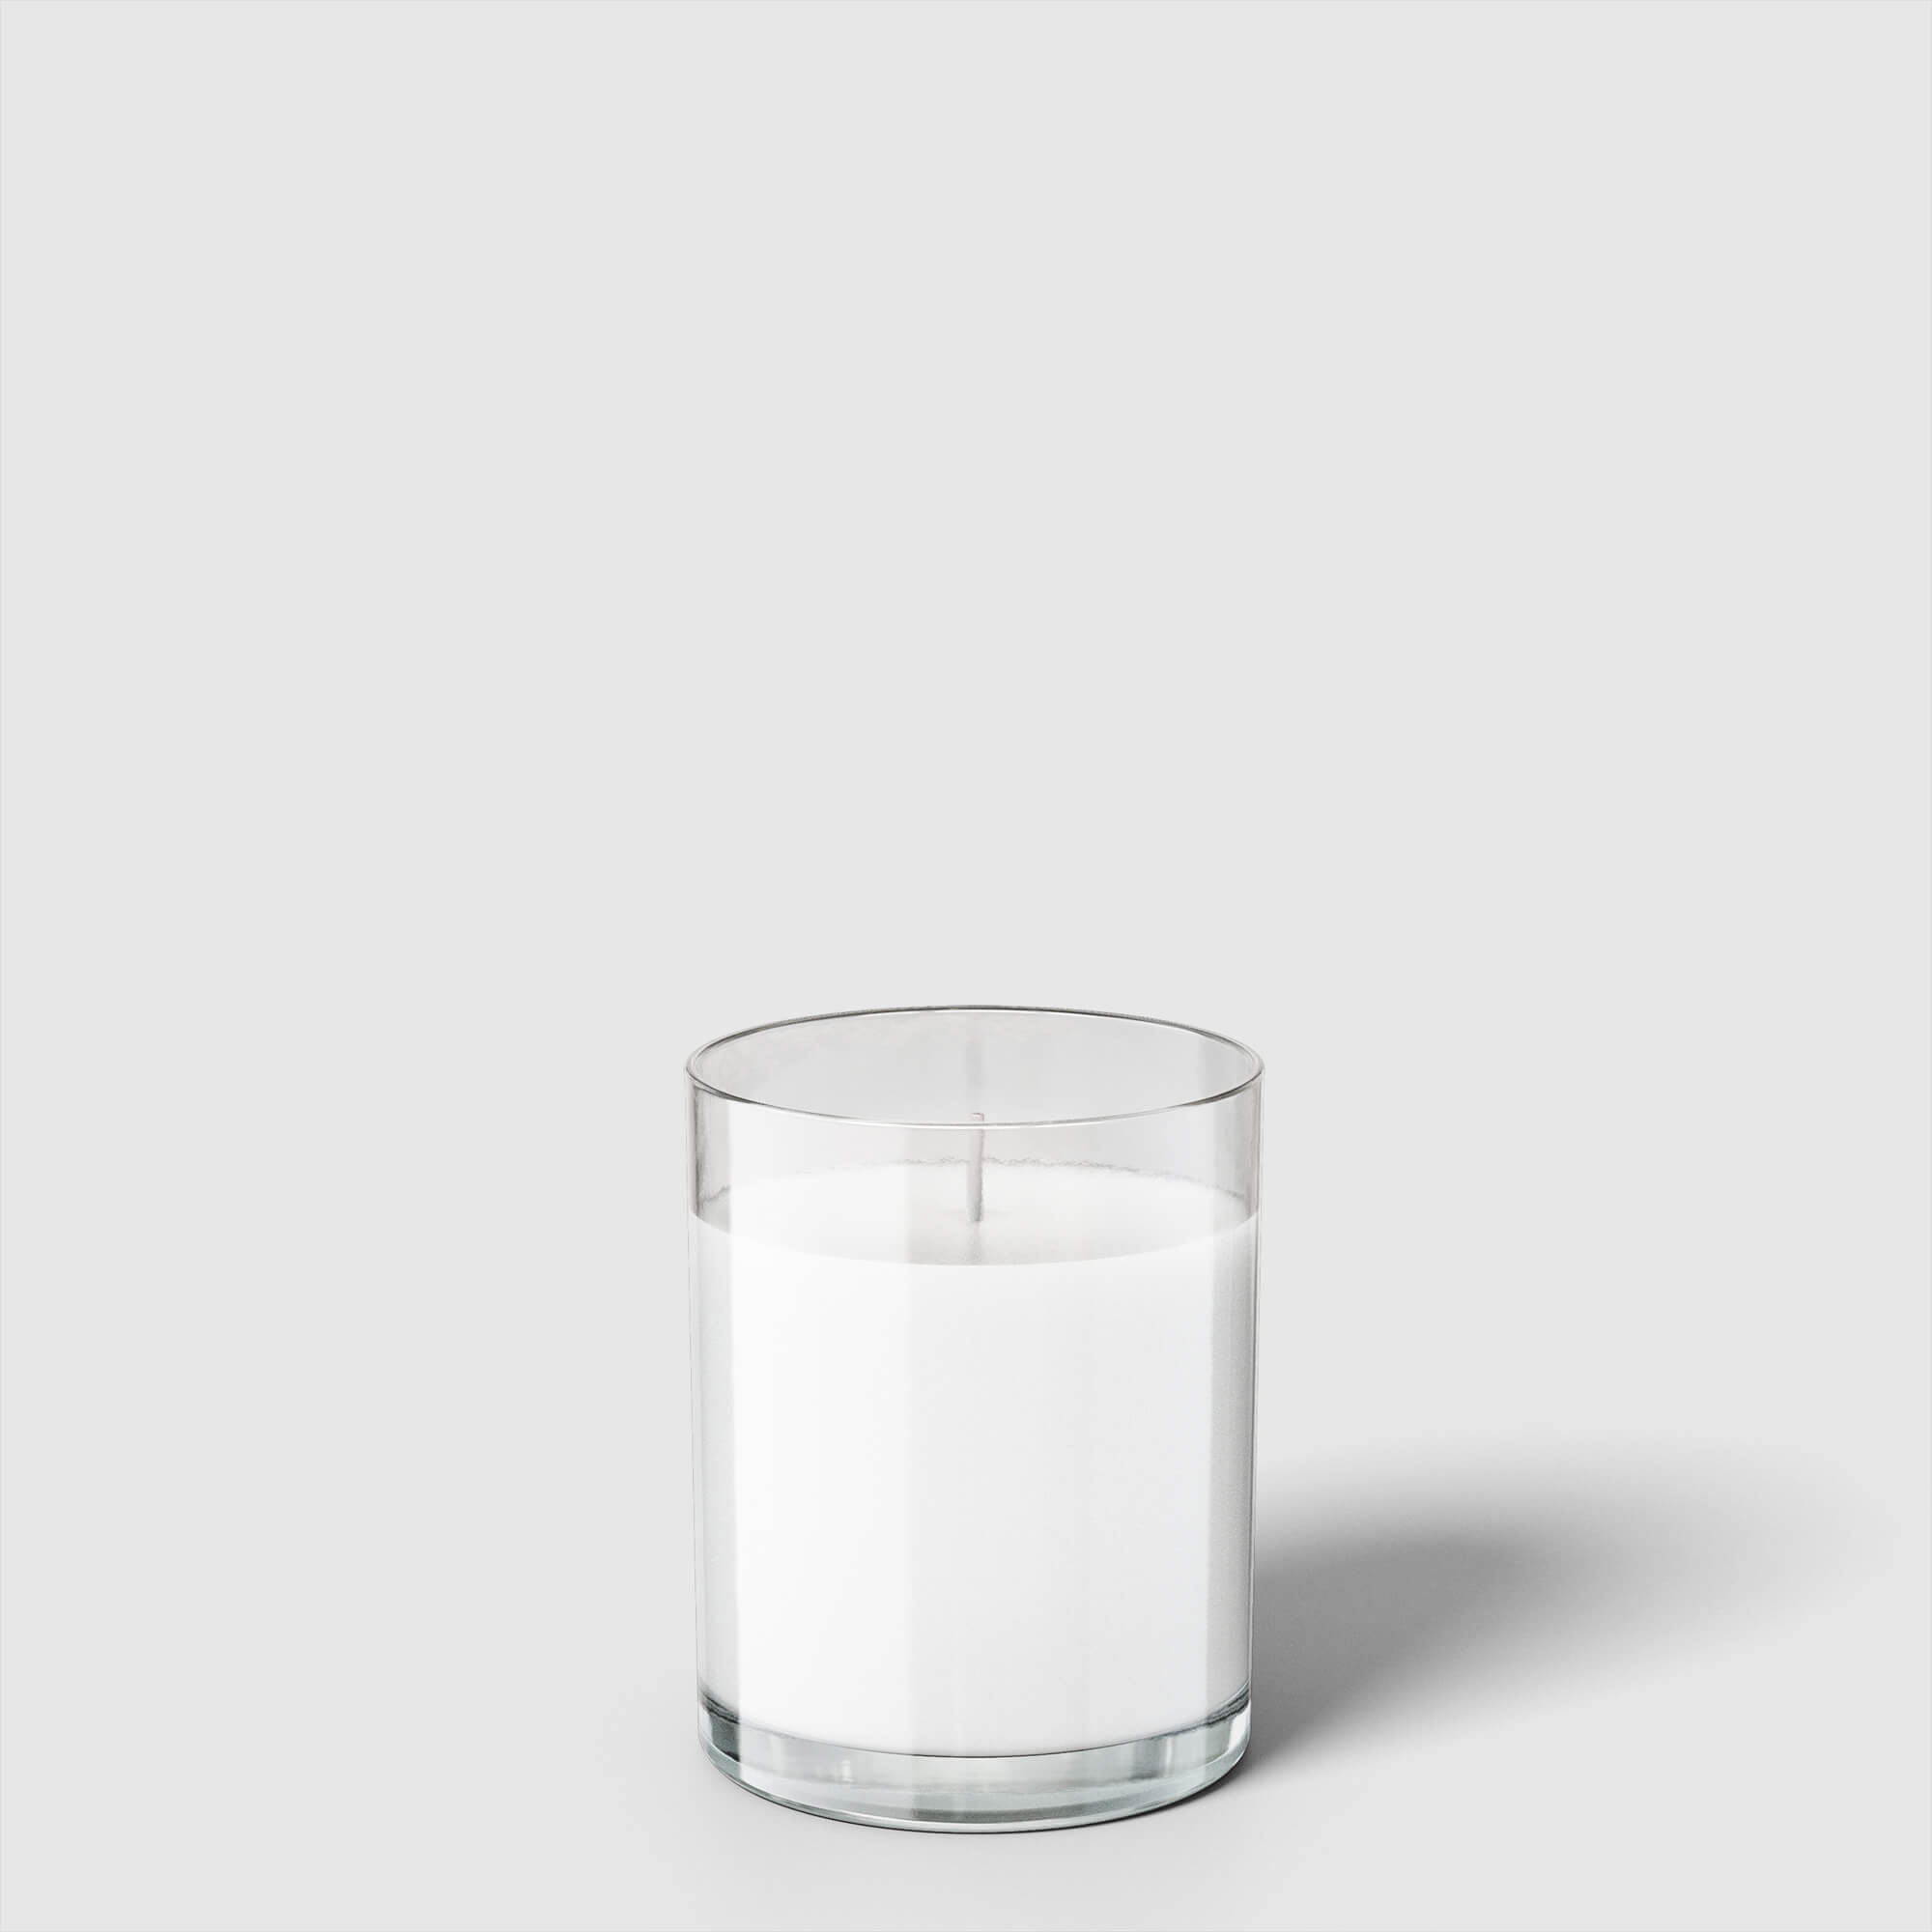 Blank Free Scented Candle Jar Mockup PSD Template